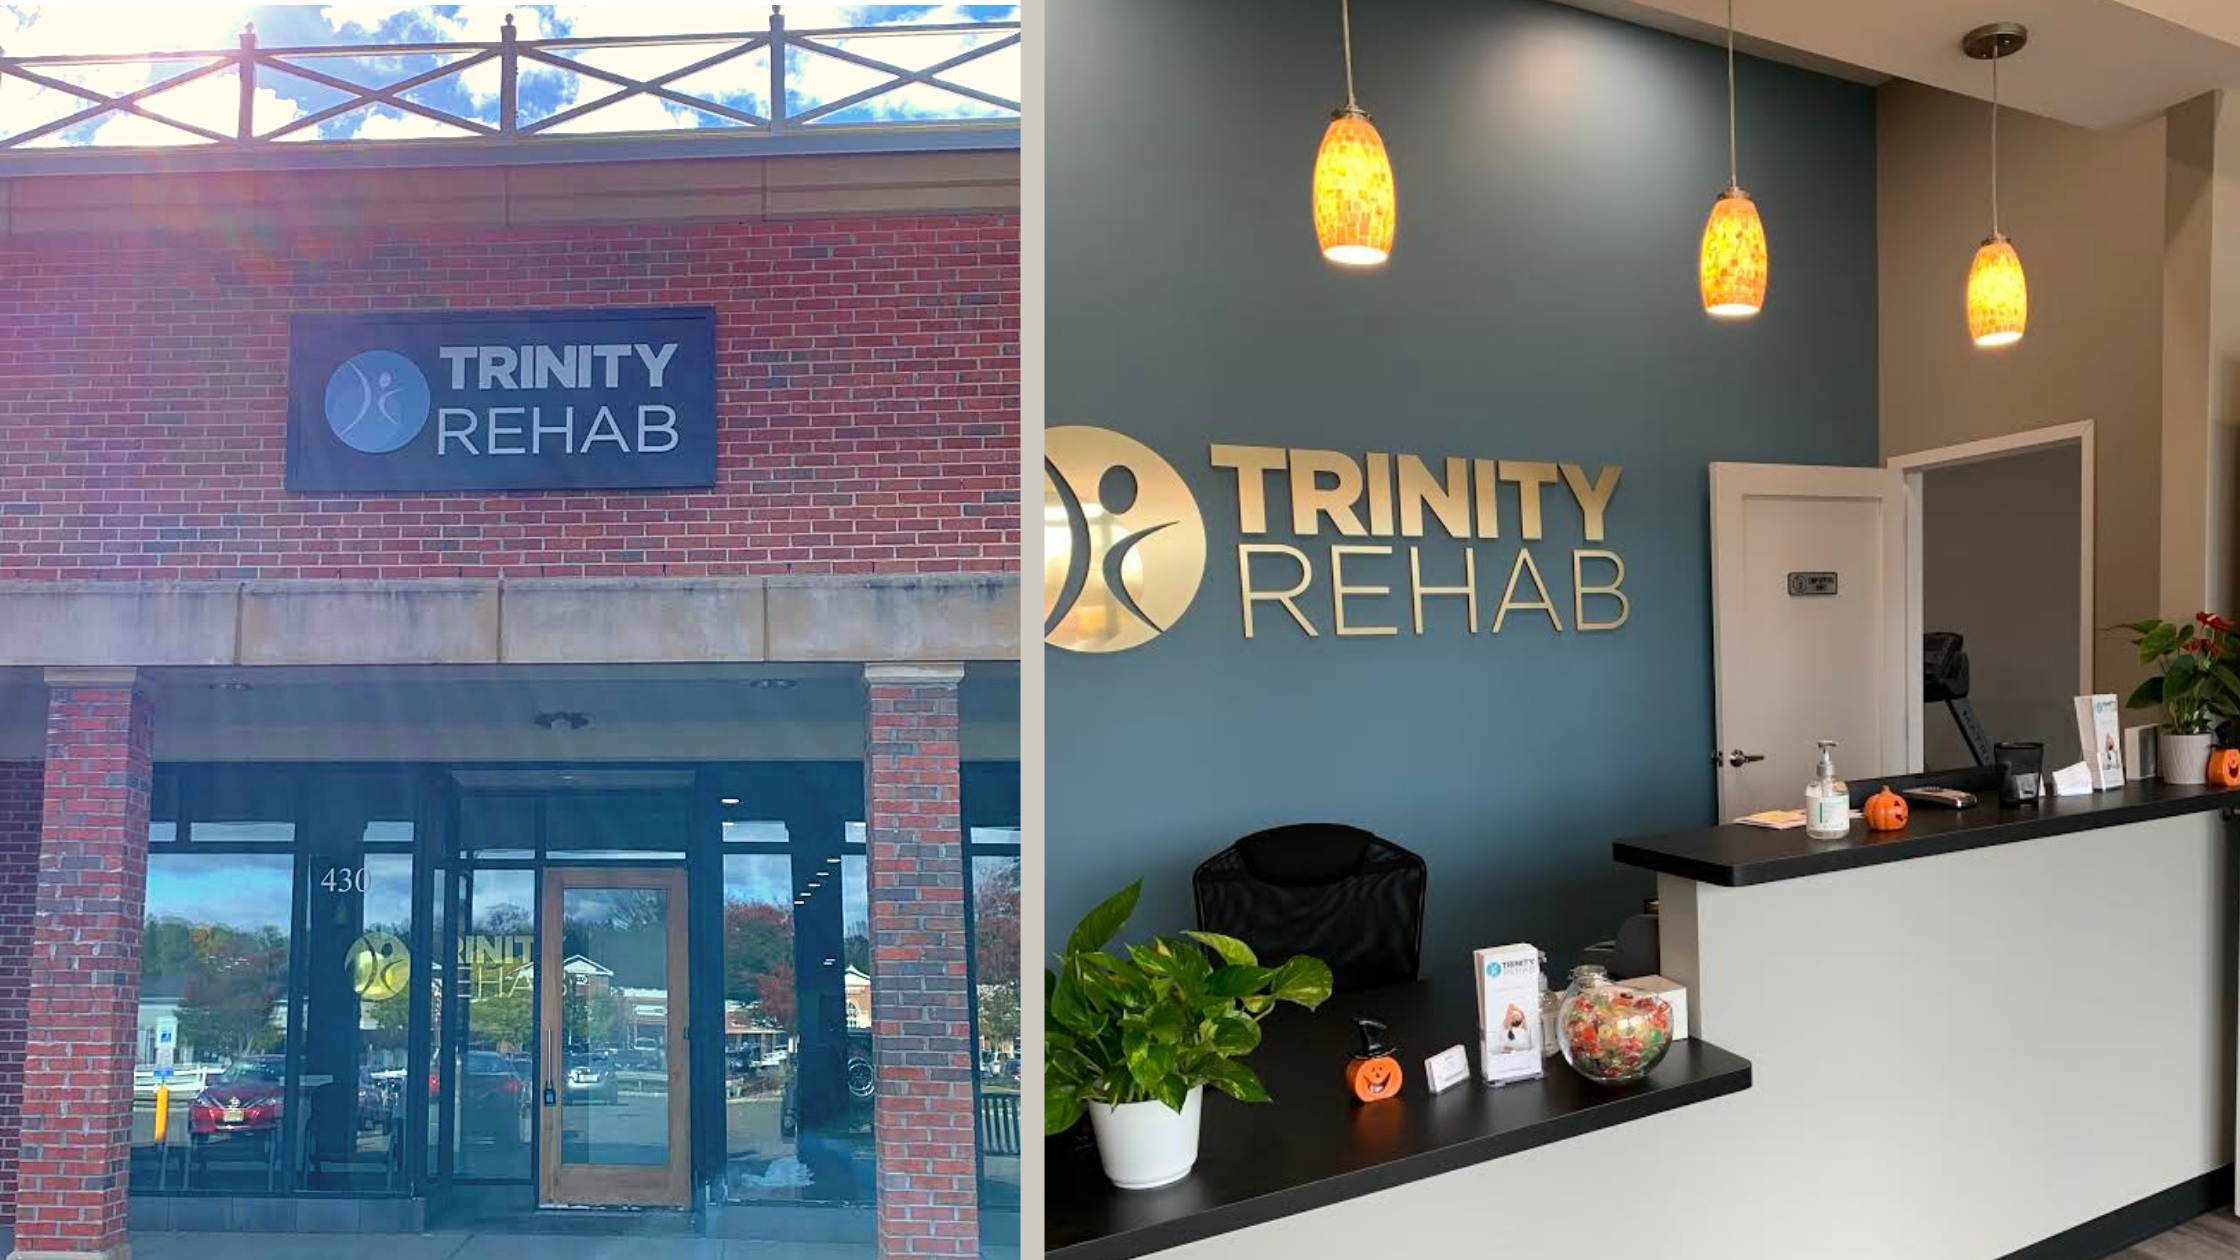 Trinity Rehab Chester Open House and Ribbon Cutting